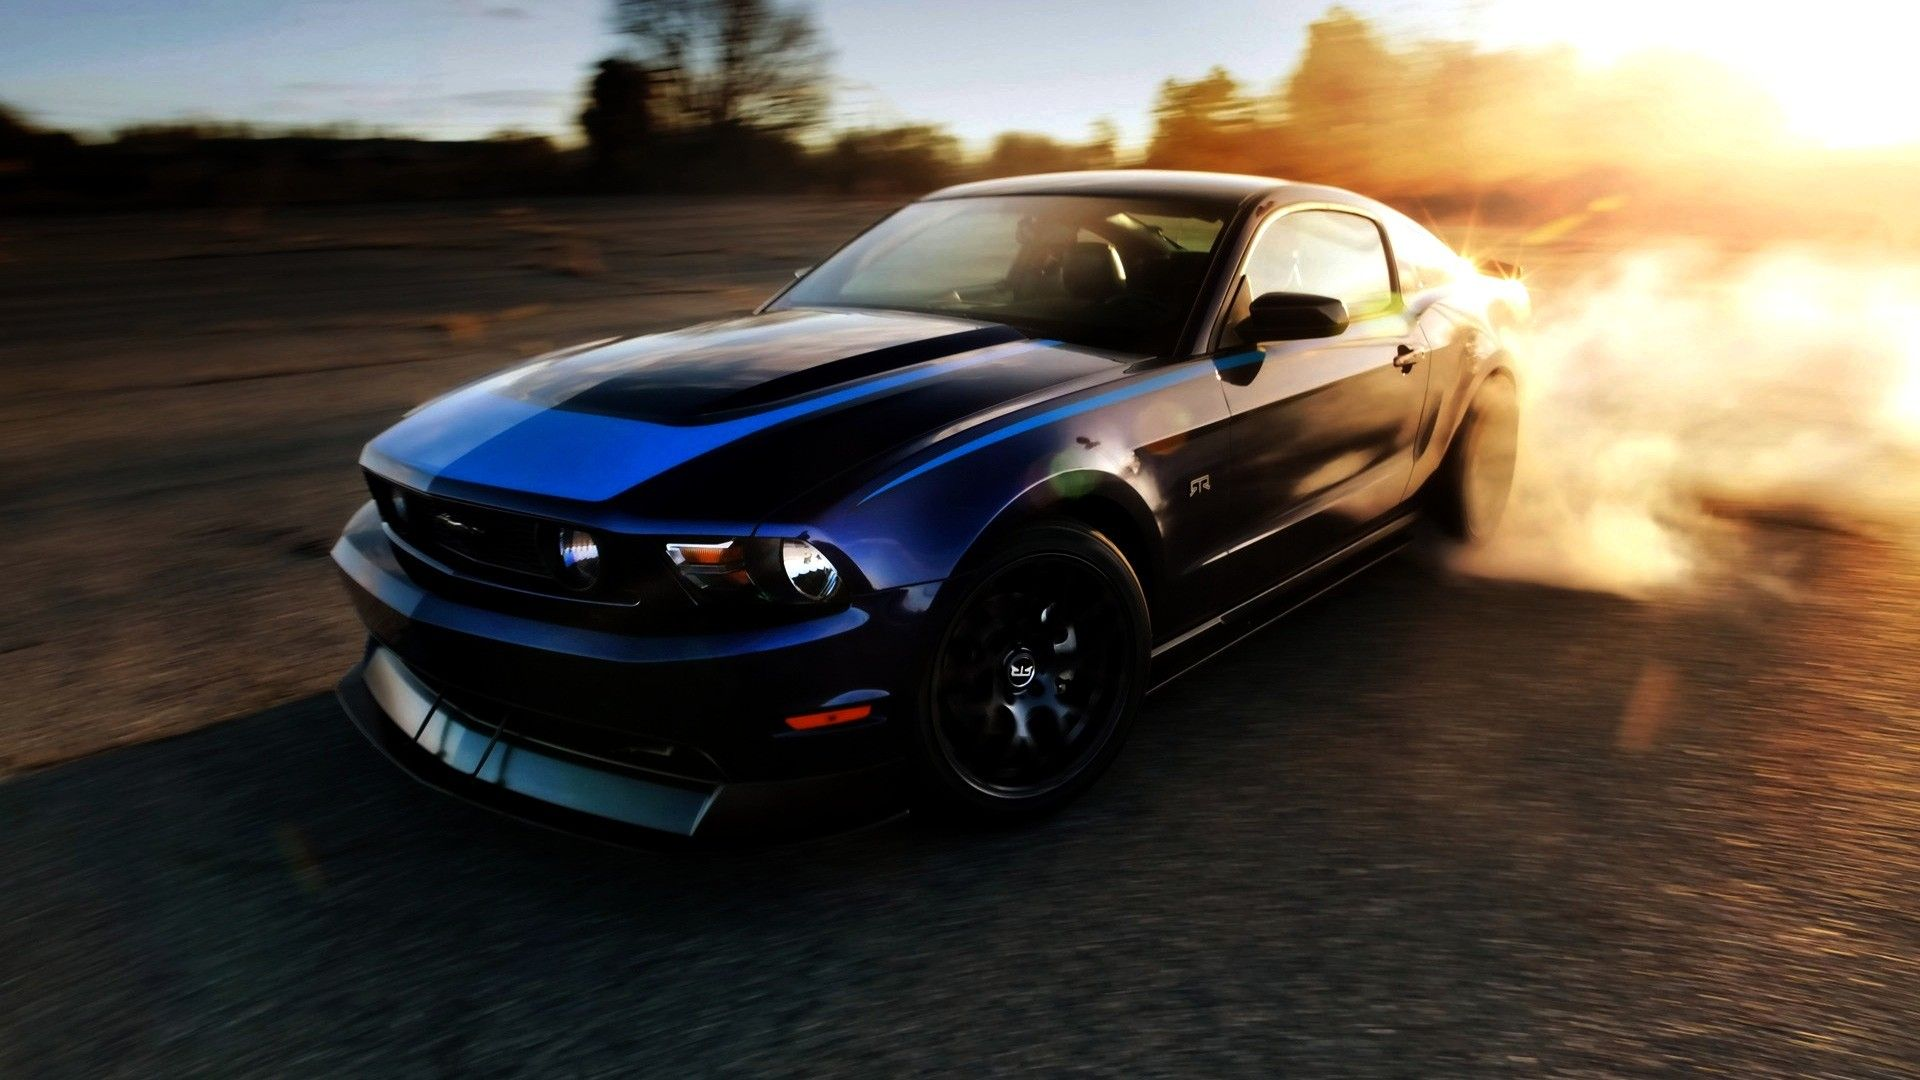 Iphone wallpaper zzz - 2014 Ford Mustang Burnout Hd Wallpapers 1080p Cars